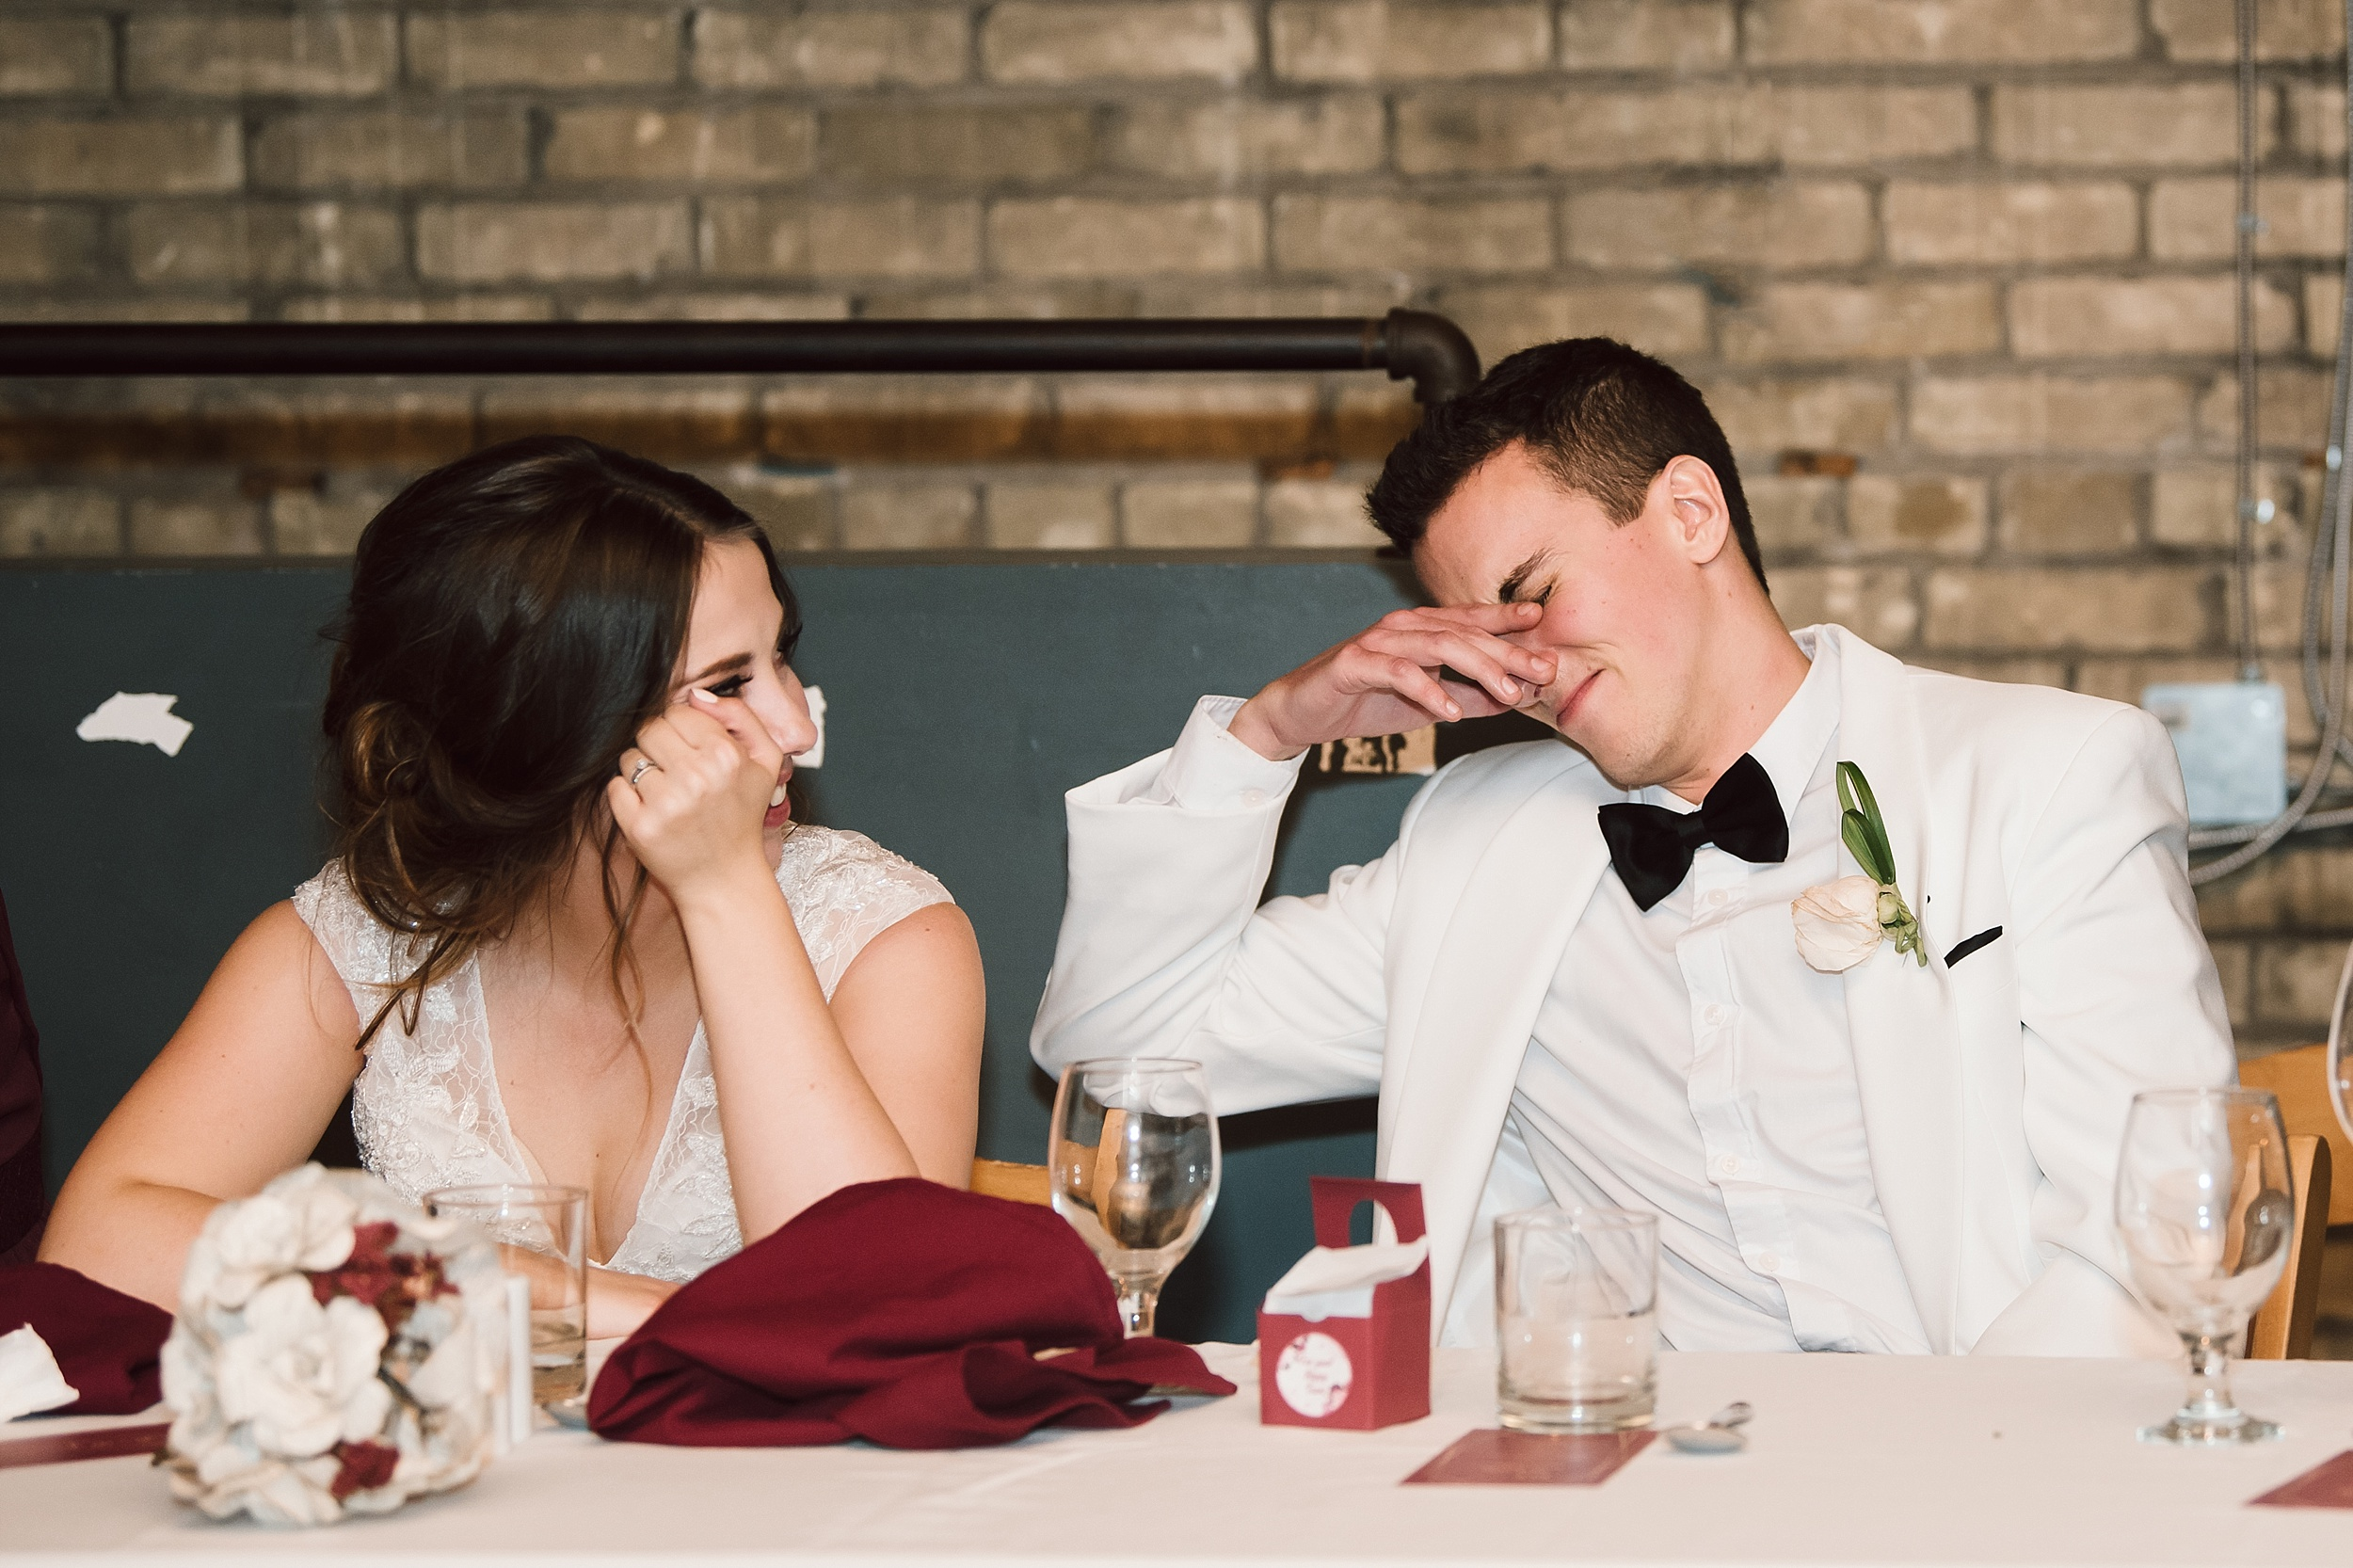 Jam_Factory_Wedding_Toronto_Winter_Wedding_Photographer_0081.jpg